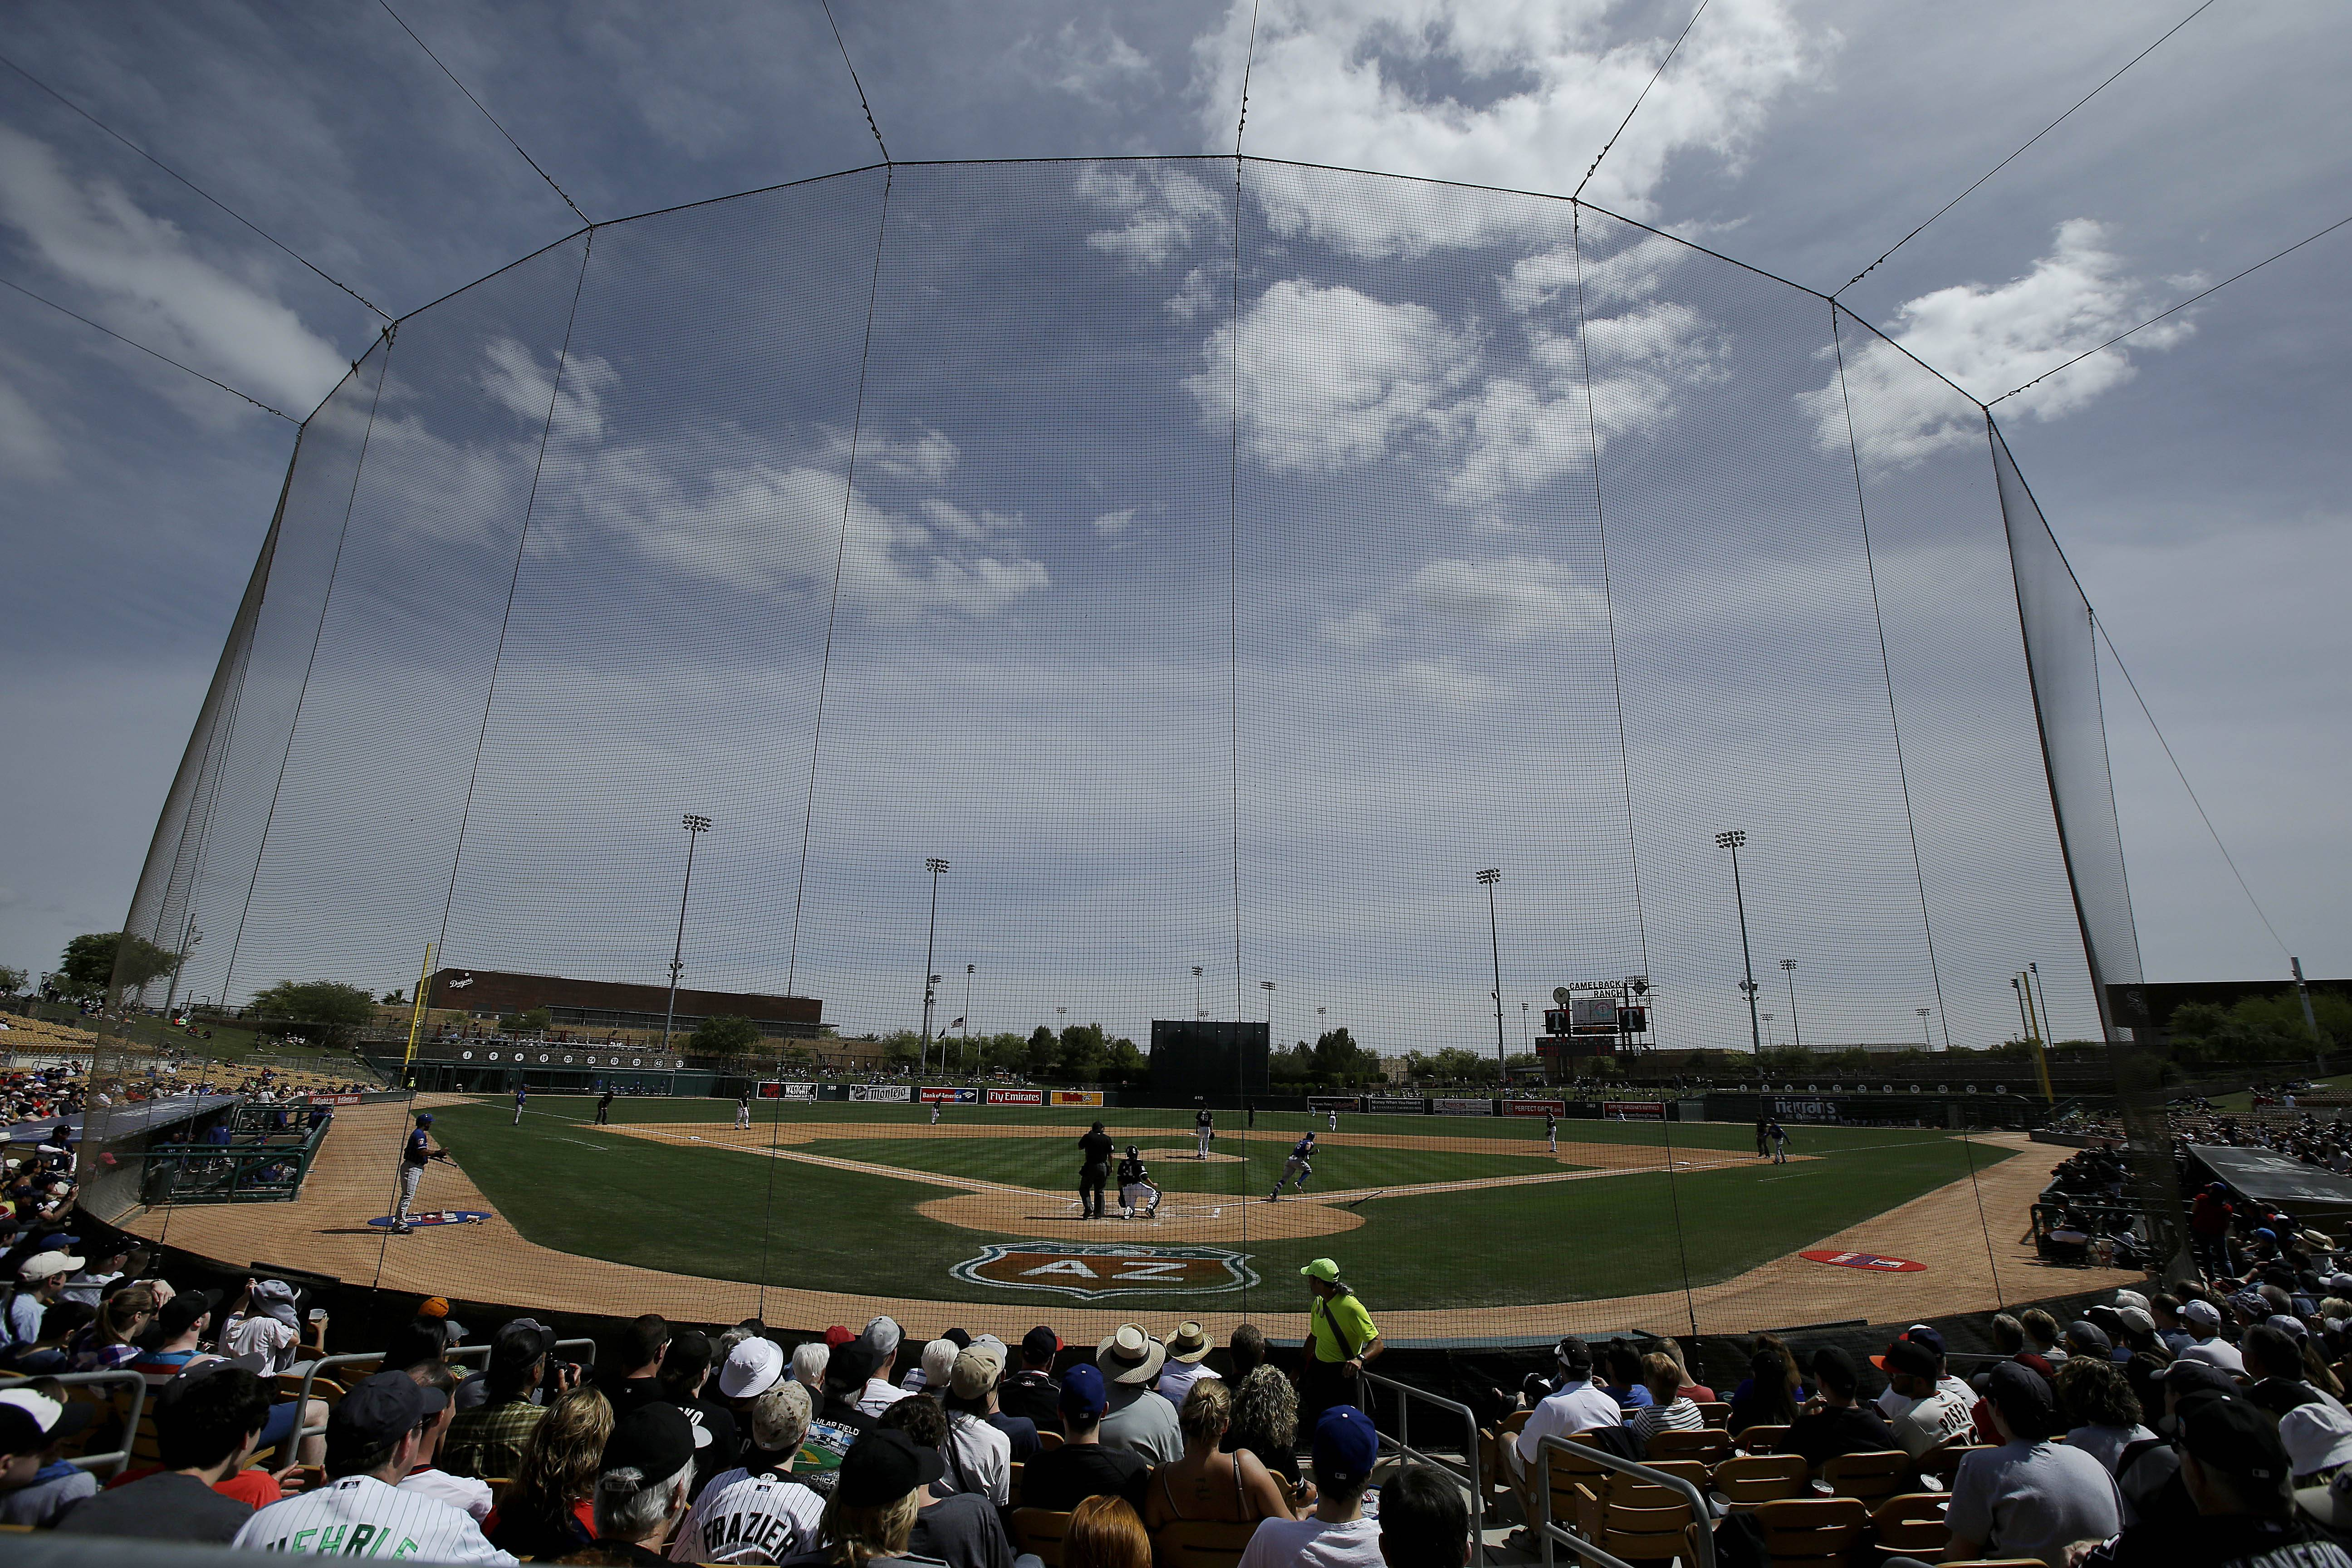 Single game tickets to White Sox Spring Training at Camelback Ranch-Glendale will be available in early January.